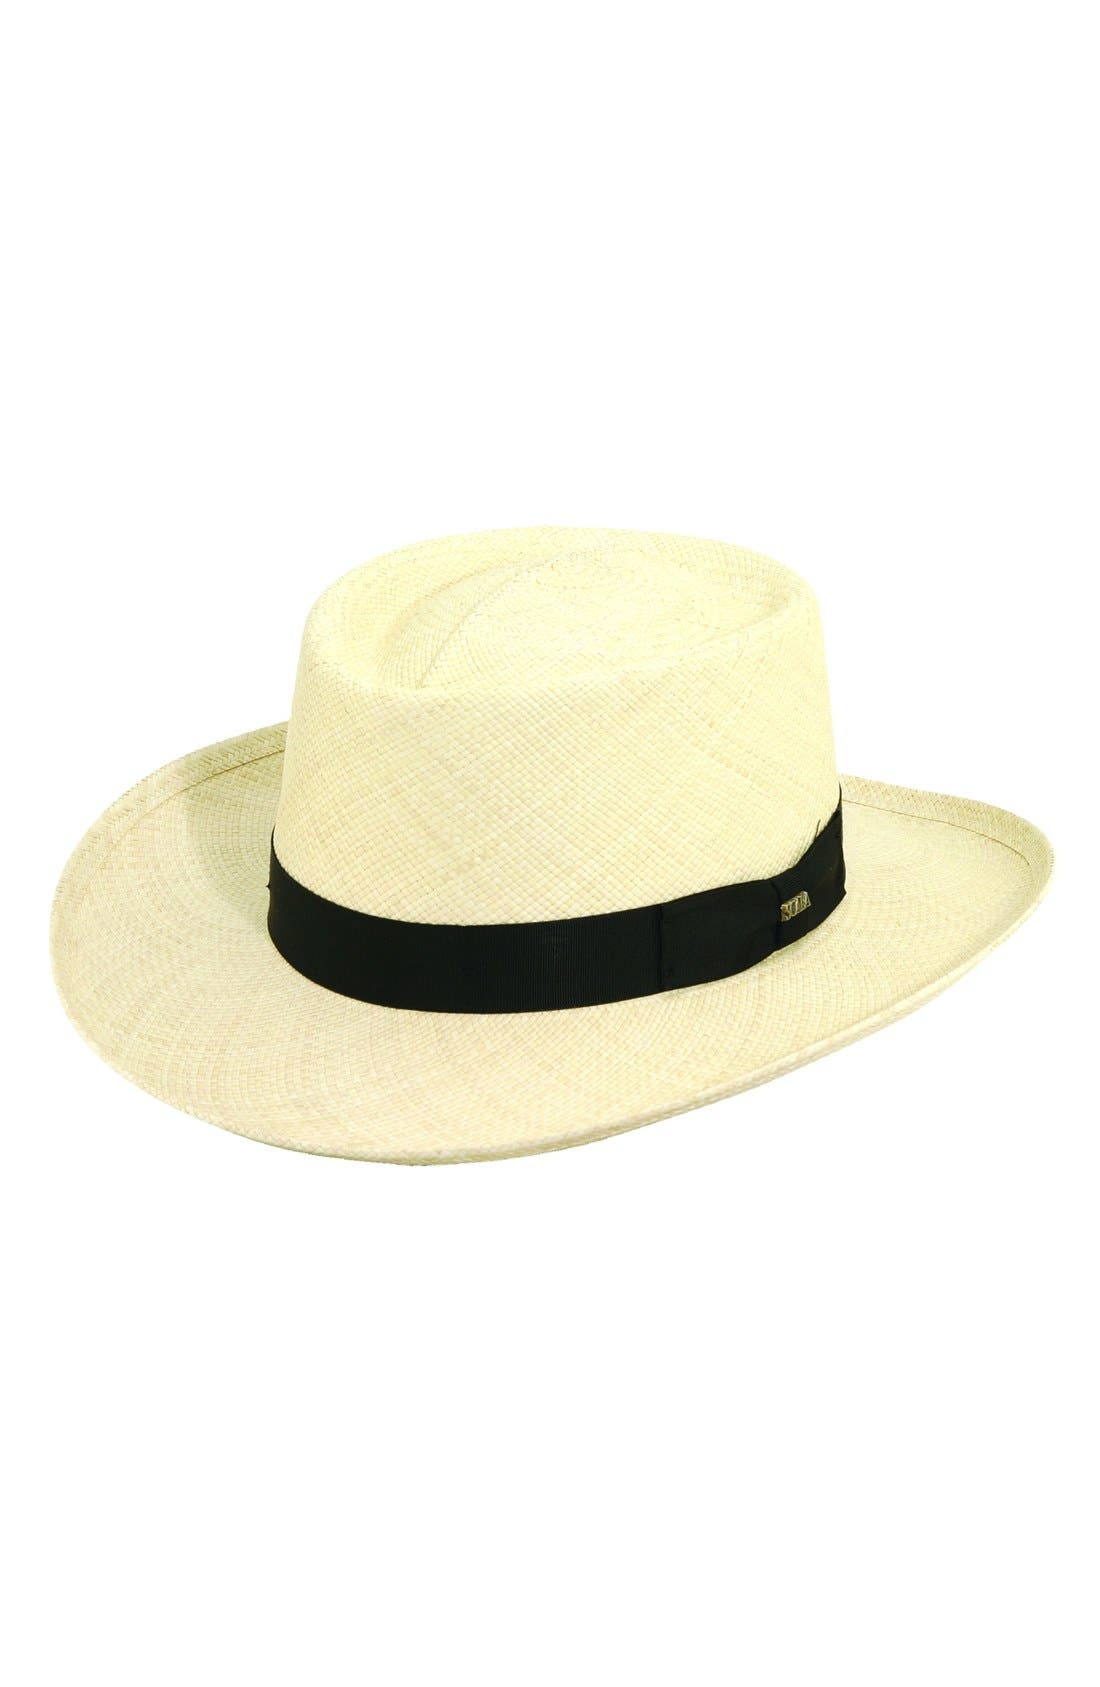 1930s Mens Hat Fashion Mens Scala Panama Straw Gambler Hat - White $115.00 AT vintagedancer.com